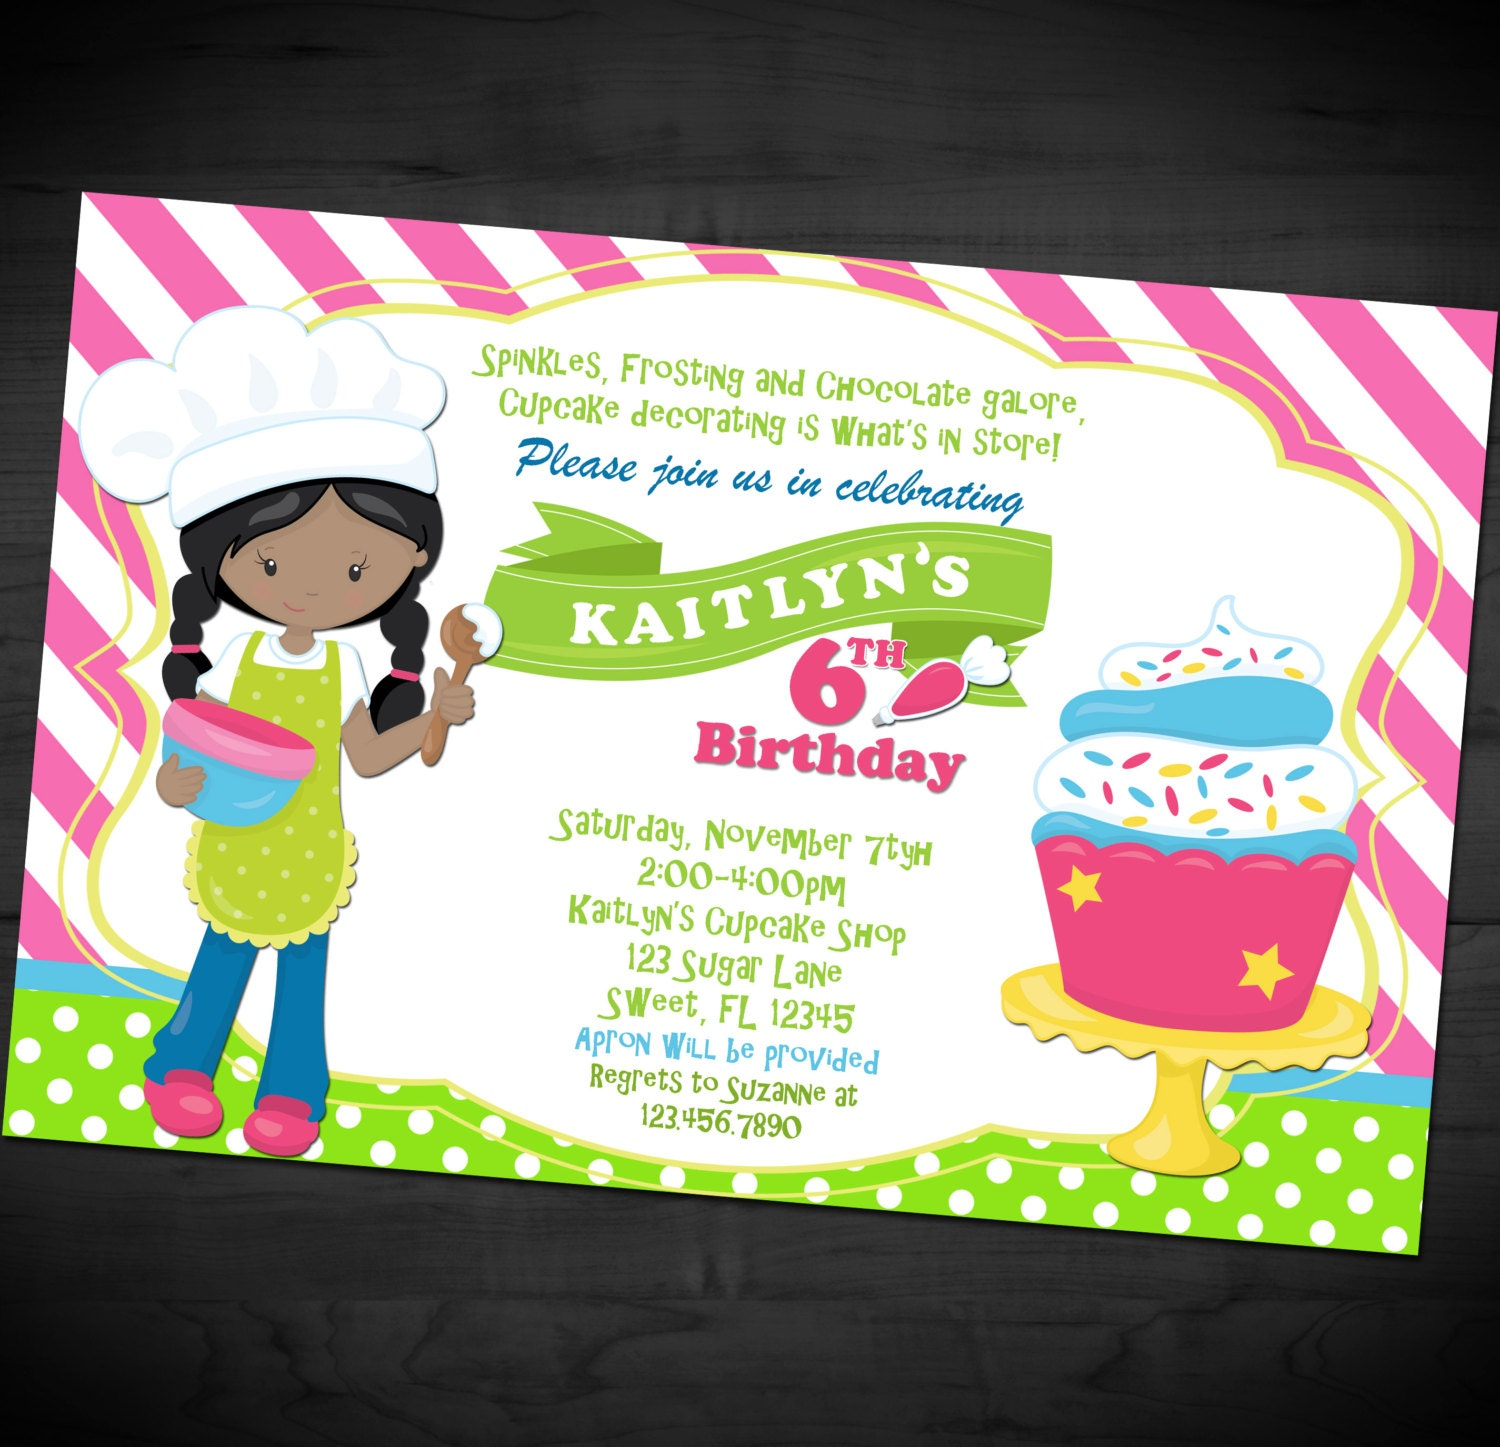 Cake Decorating Birthday Party Invitations : Cupcake Decorating Birthday Invitation Cake Decorating